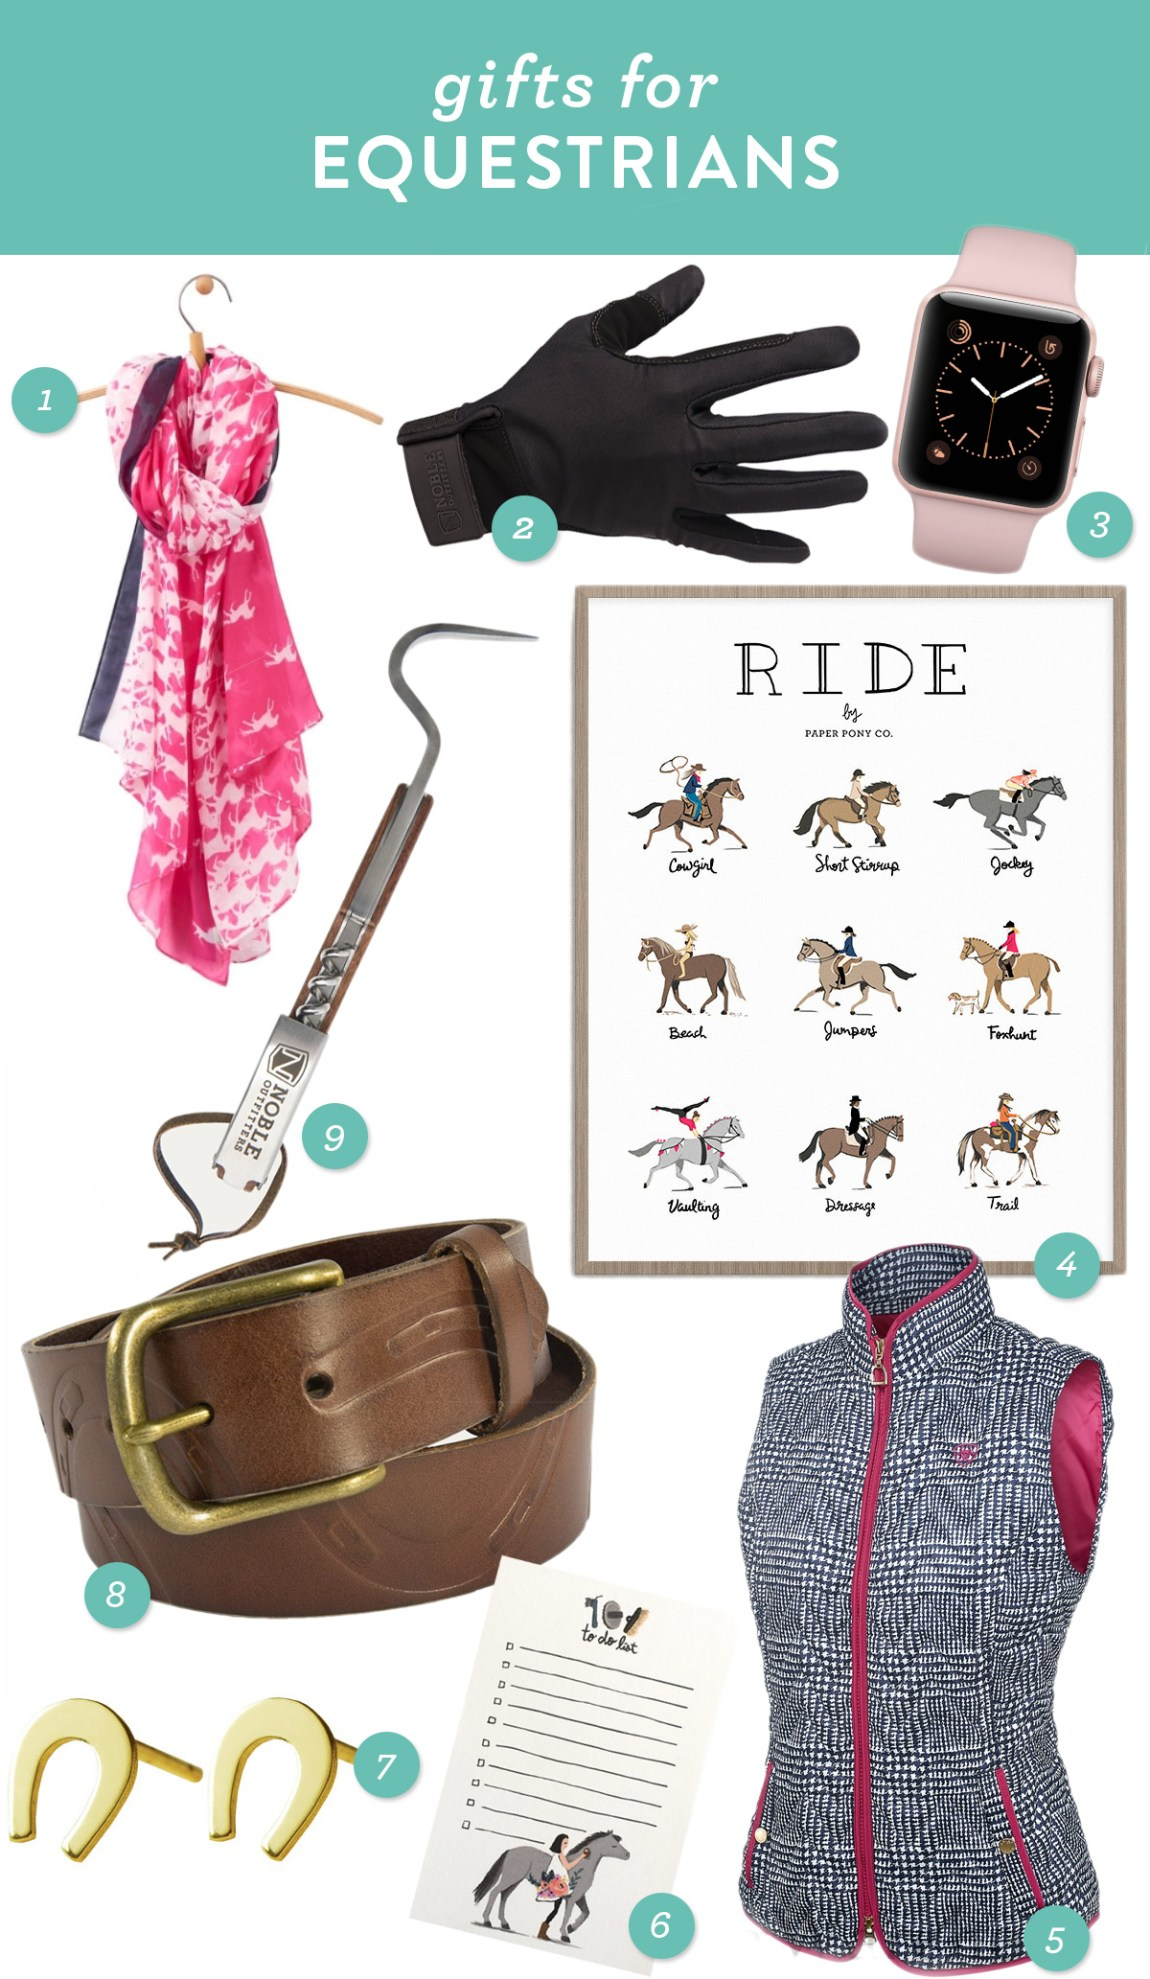 Gift ideas for the equestrians and horse lovers in your life!